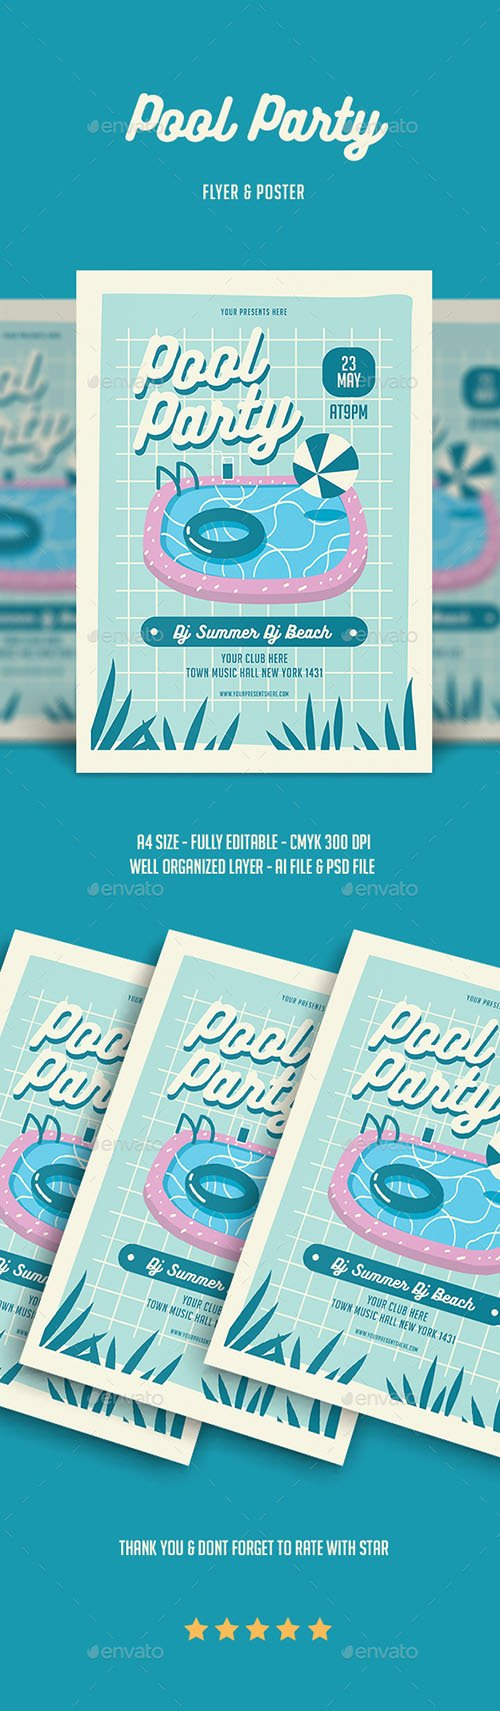 GR - Pool Party Flyer 22011745